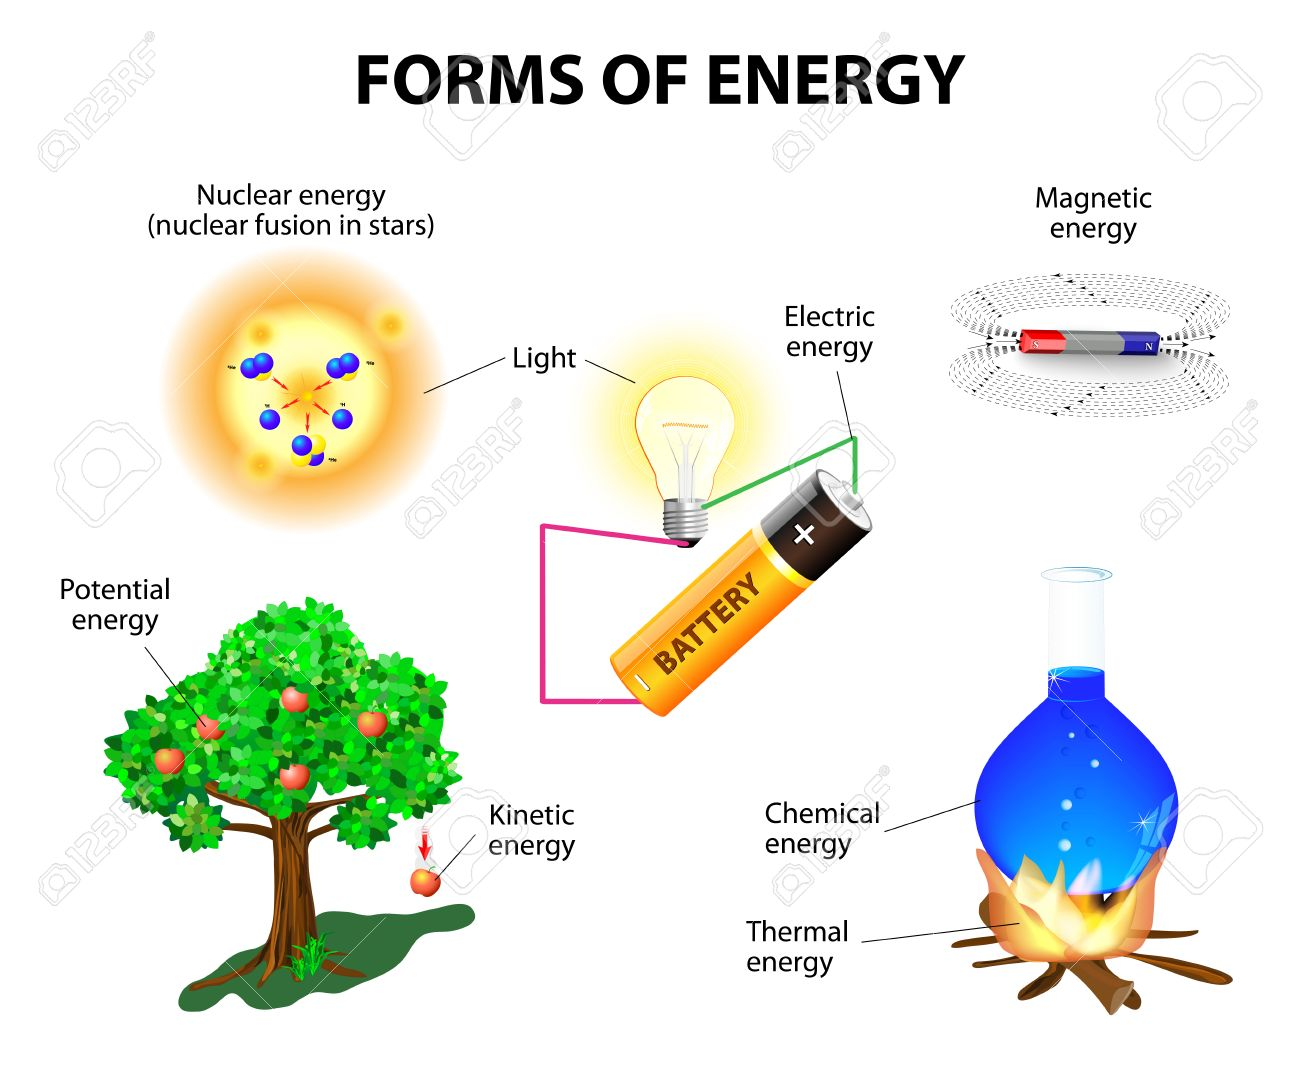 Is sound energy considered kinetic or potential? Why?